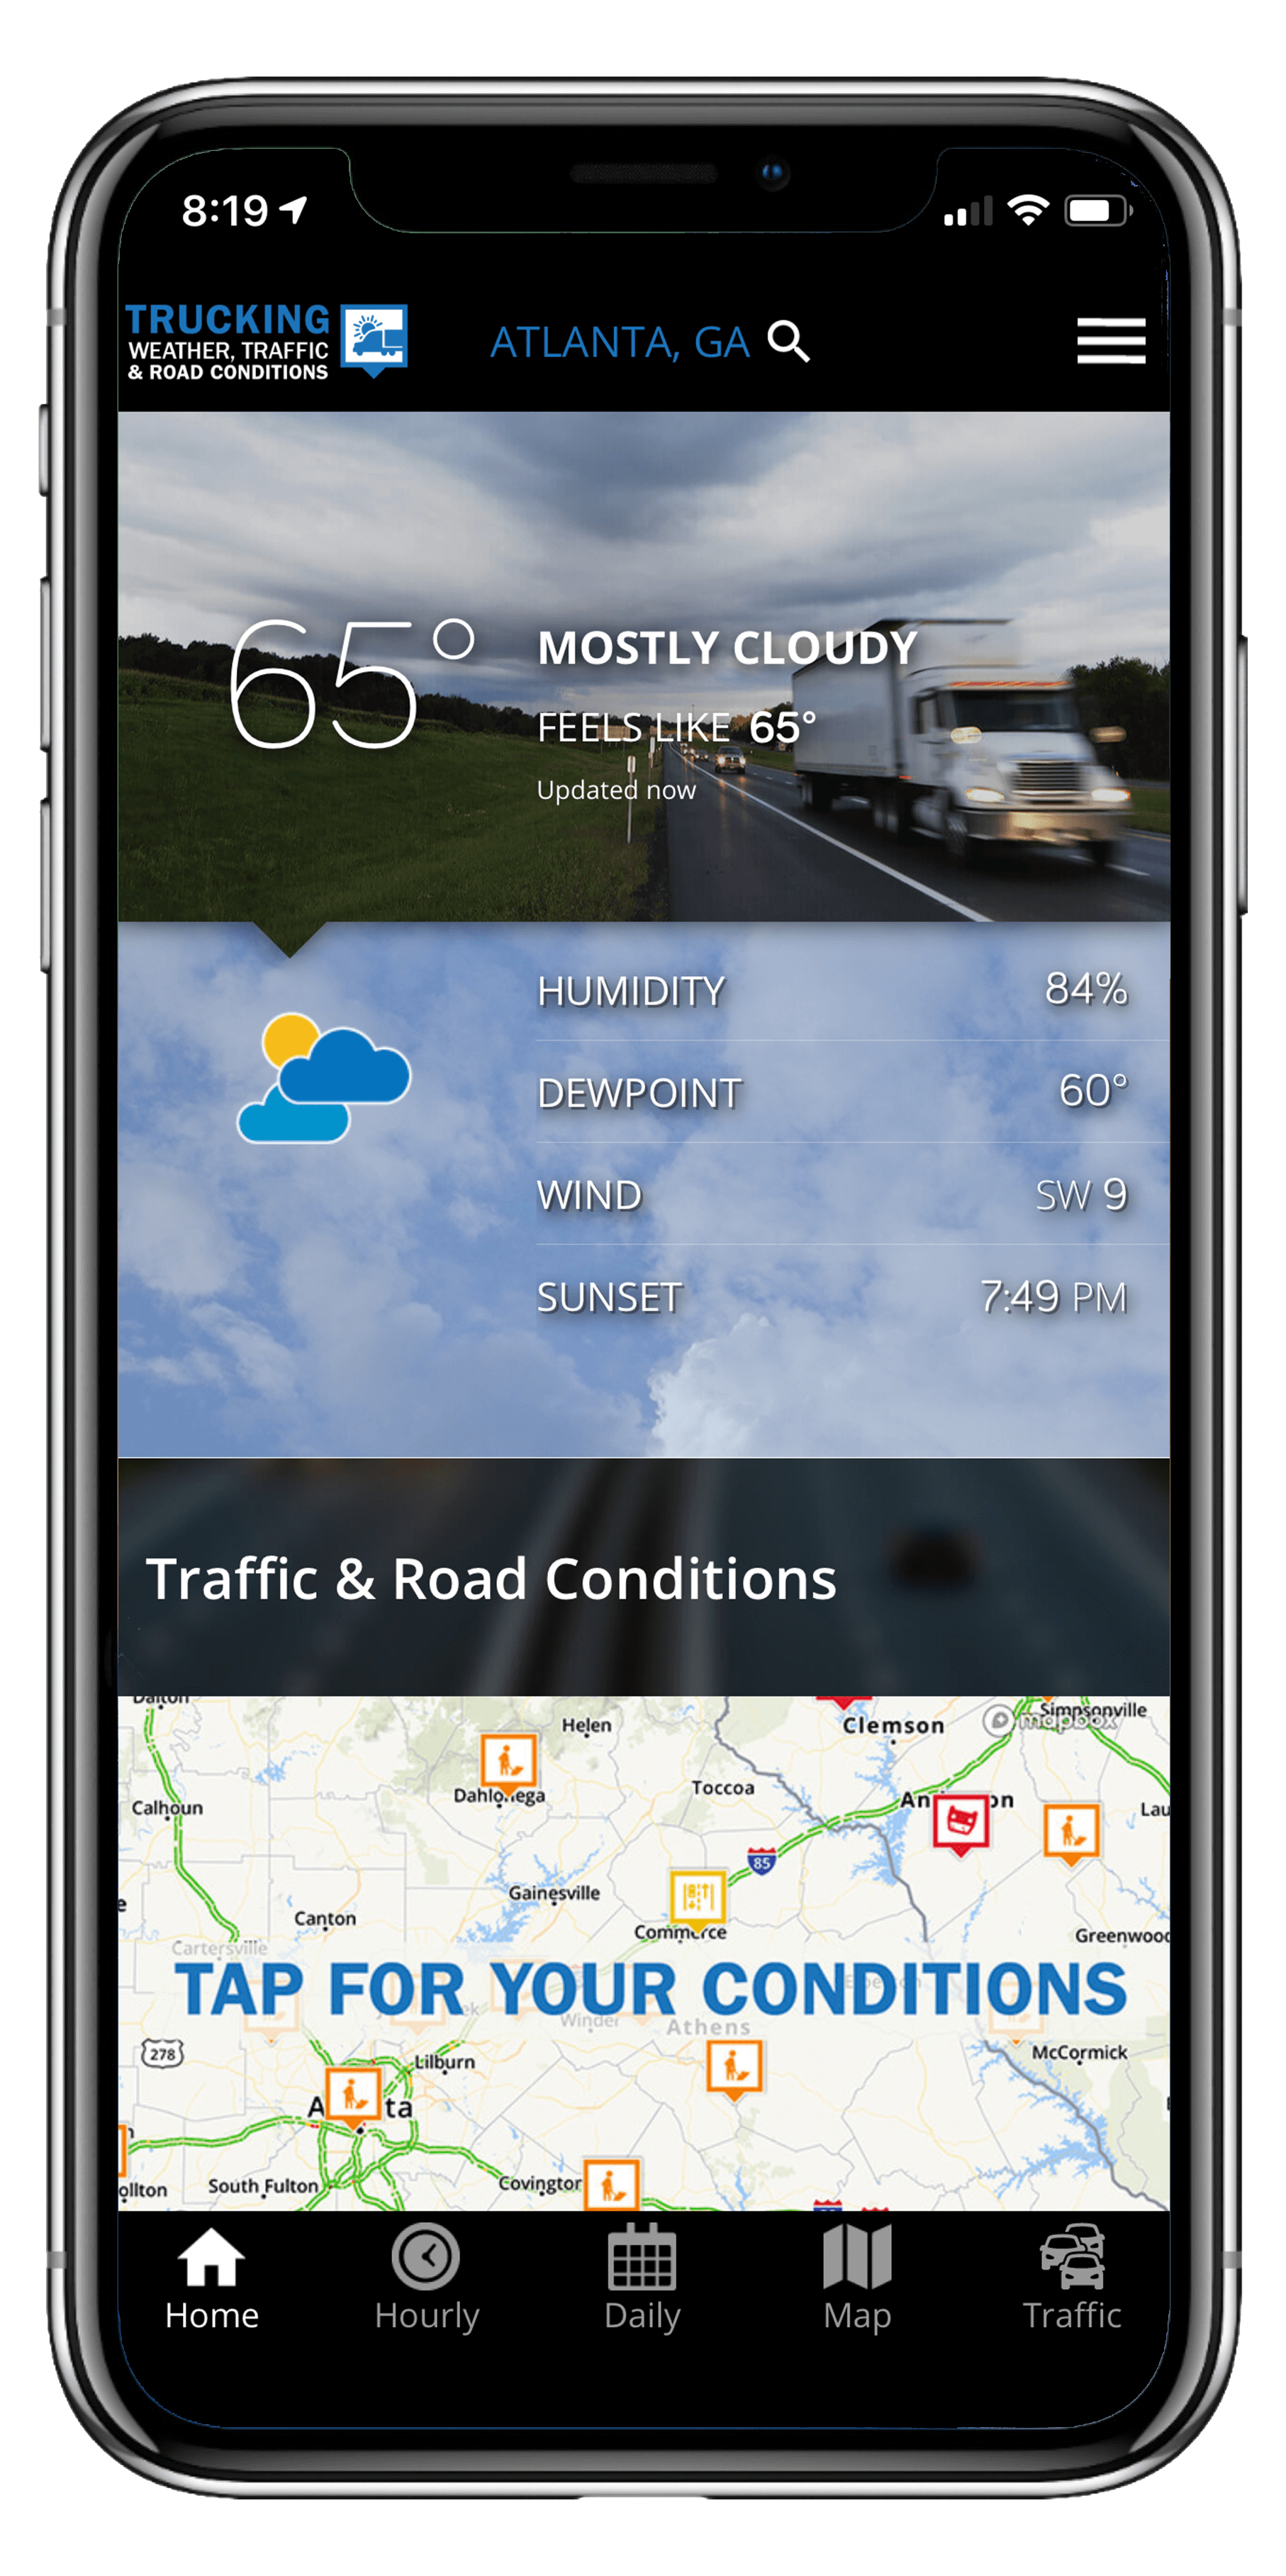 Truck driver weather app curent weather conditions info